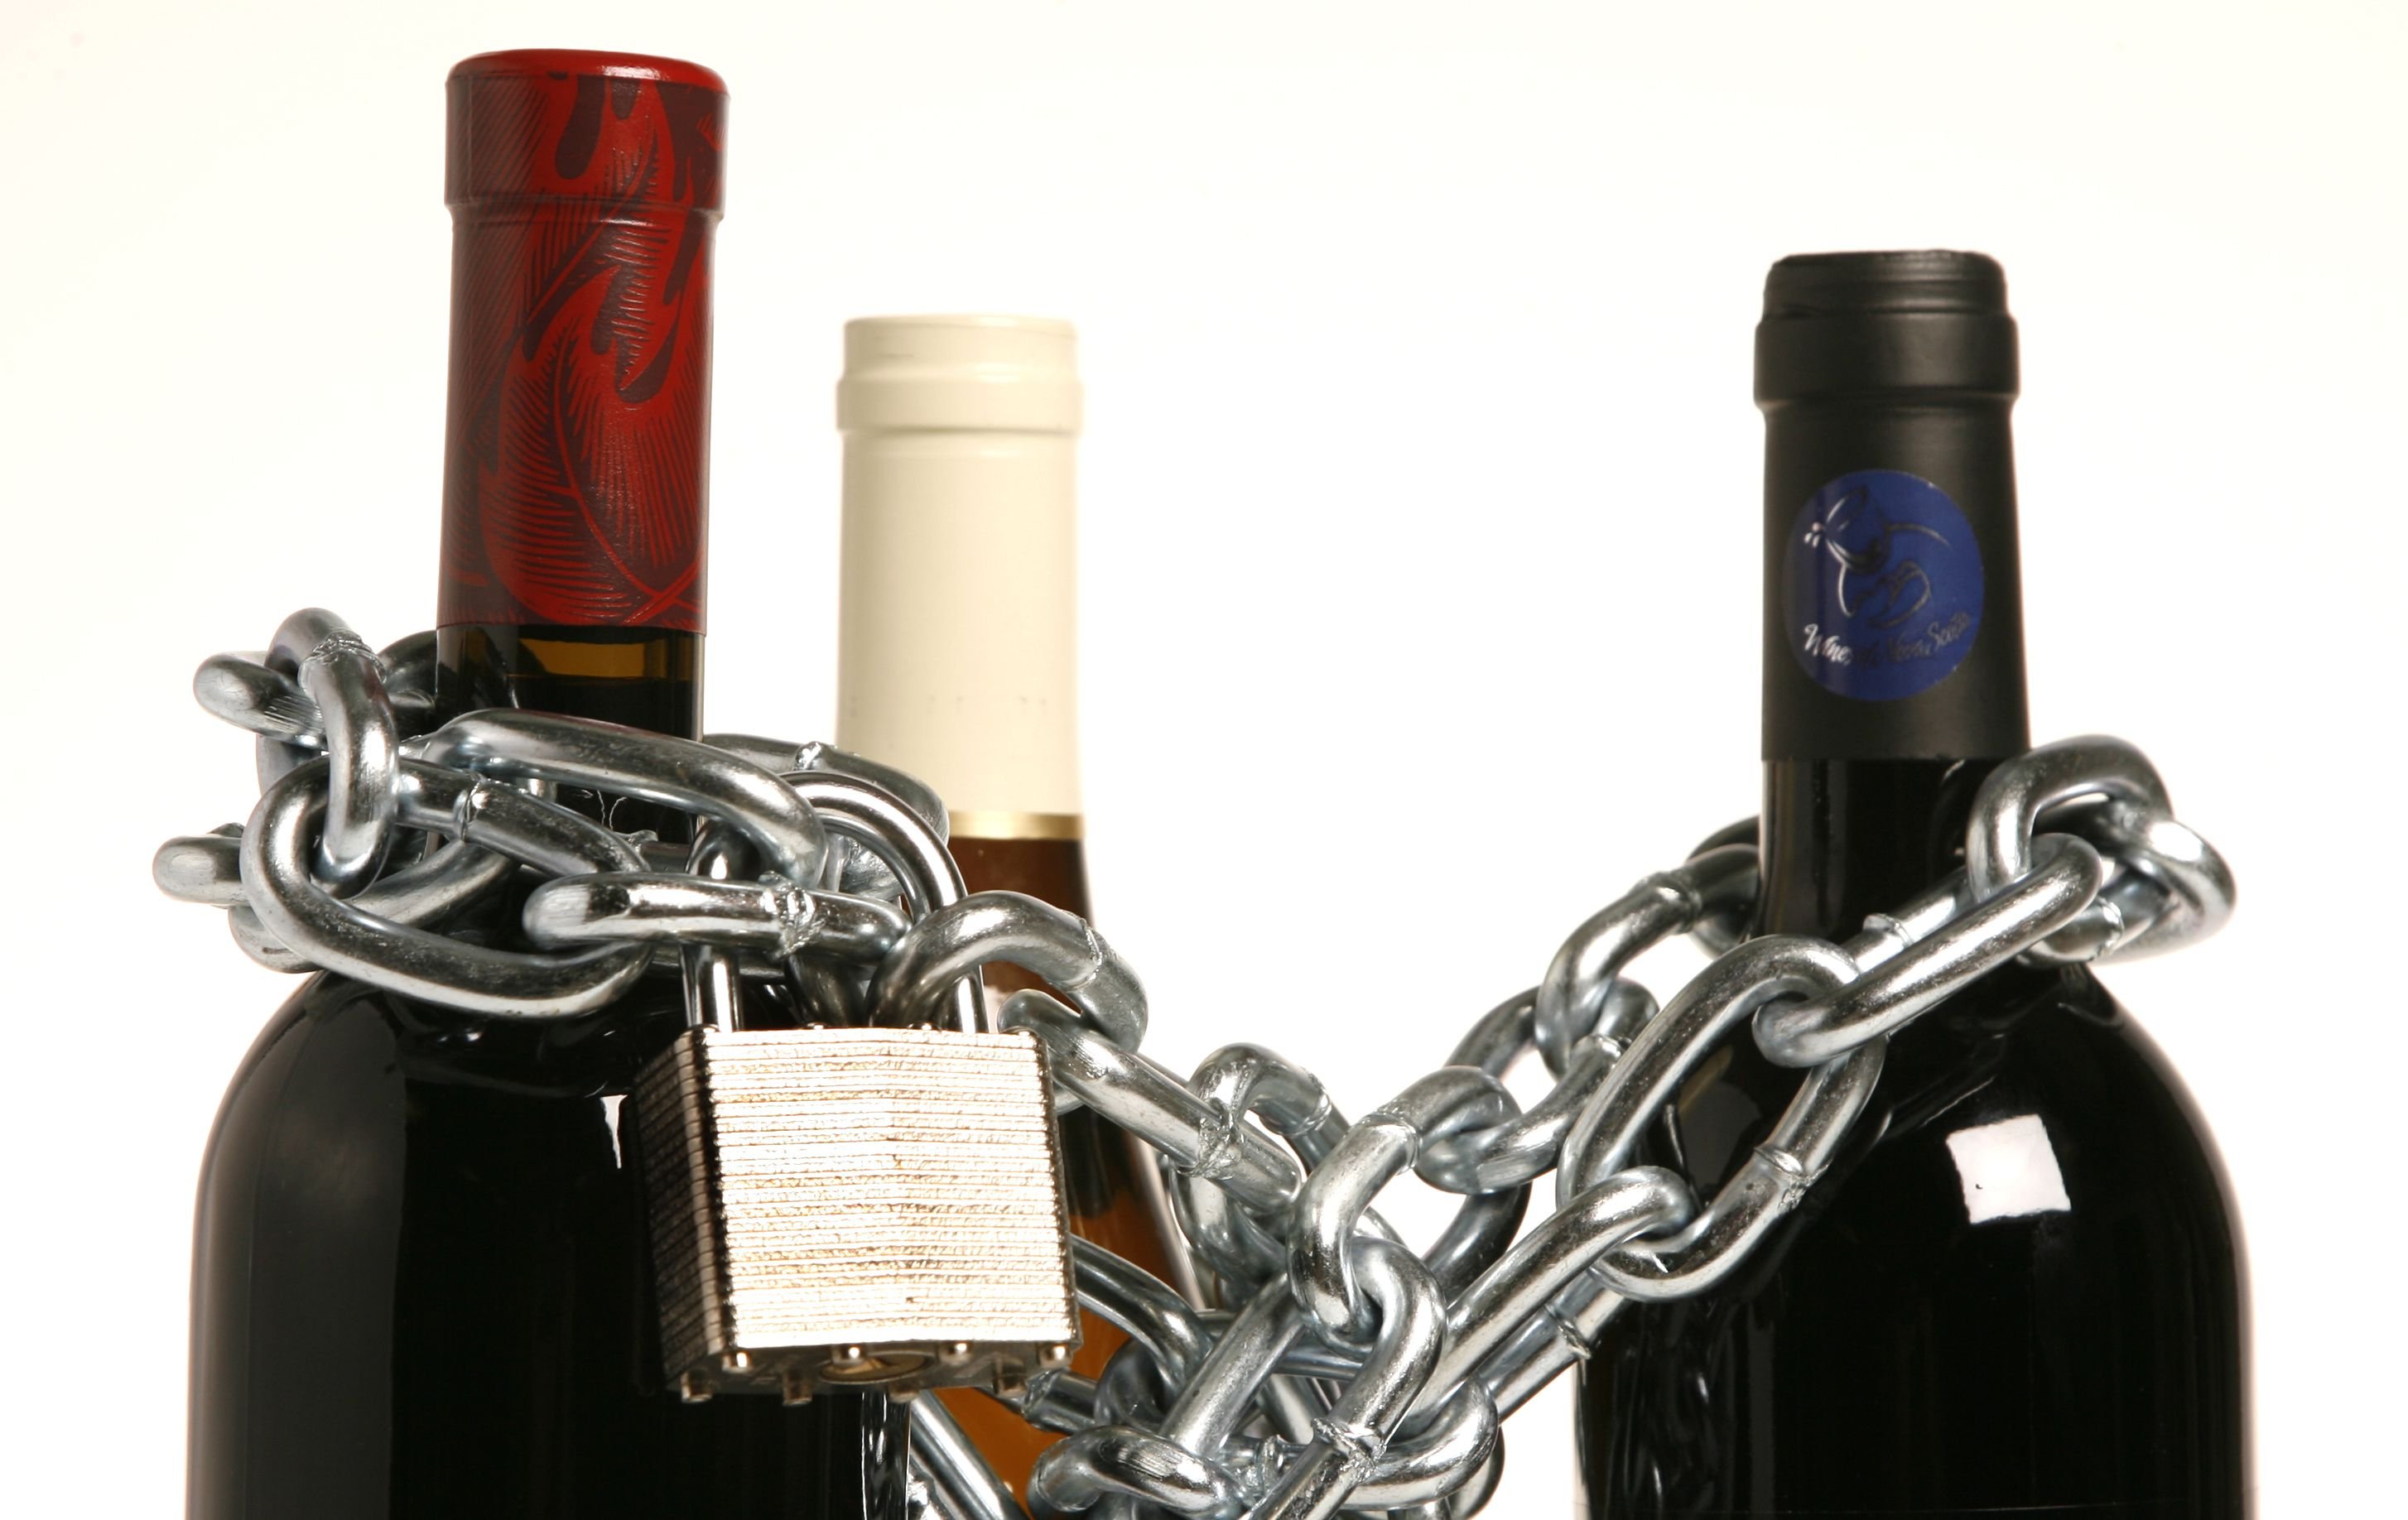 Interprovincial trade barriers are choking Canada's burgeoning wine, beer and spirits industry: it's time for ministers to act